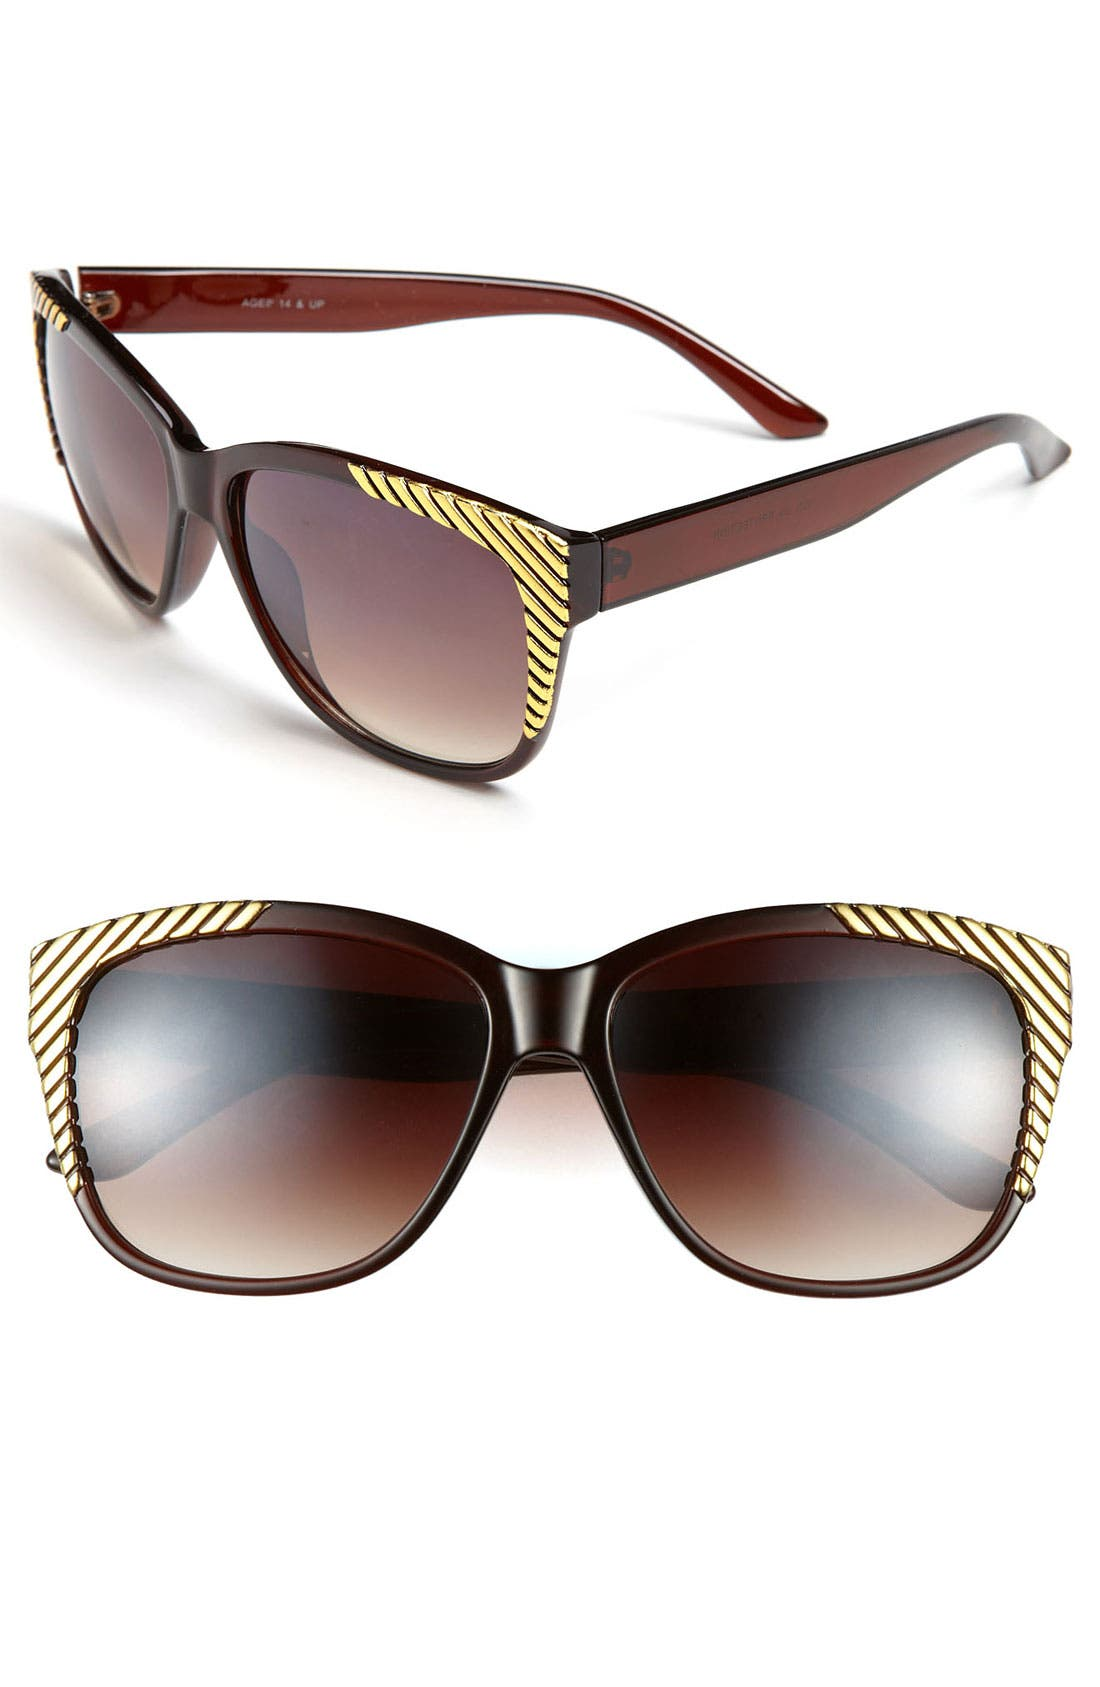 Main Image - FE NY Gold Tipped Sunglasses